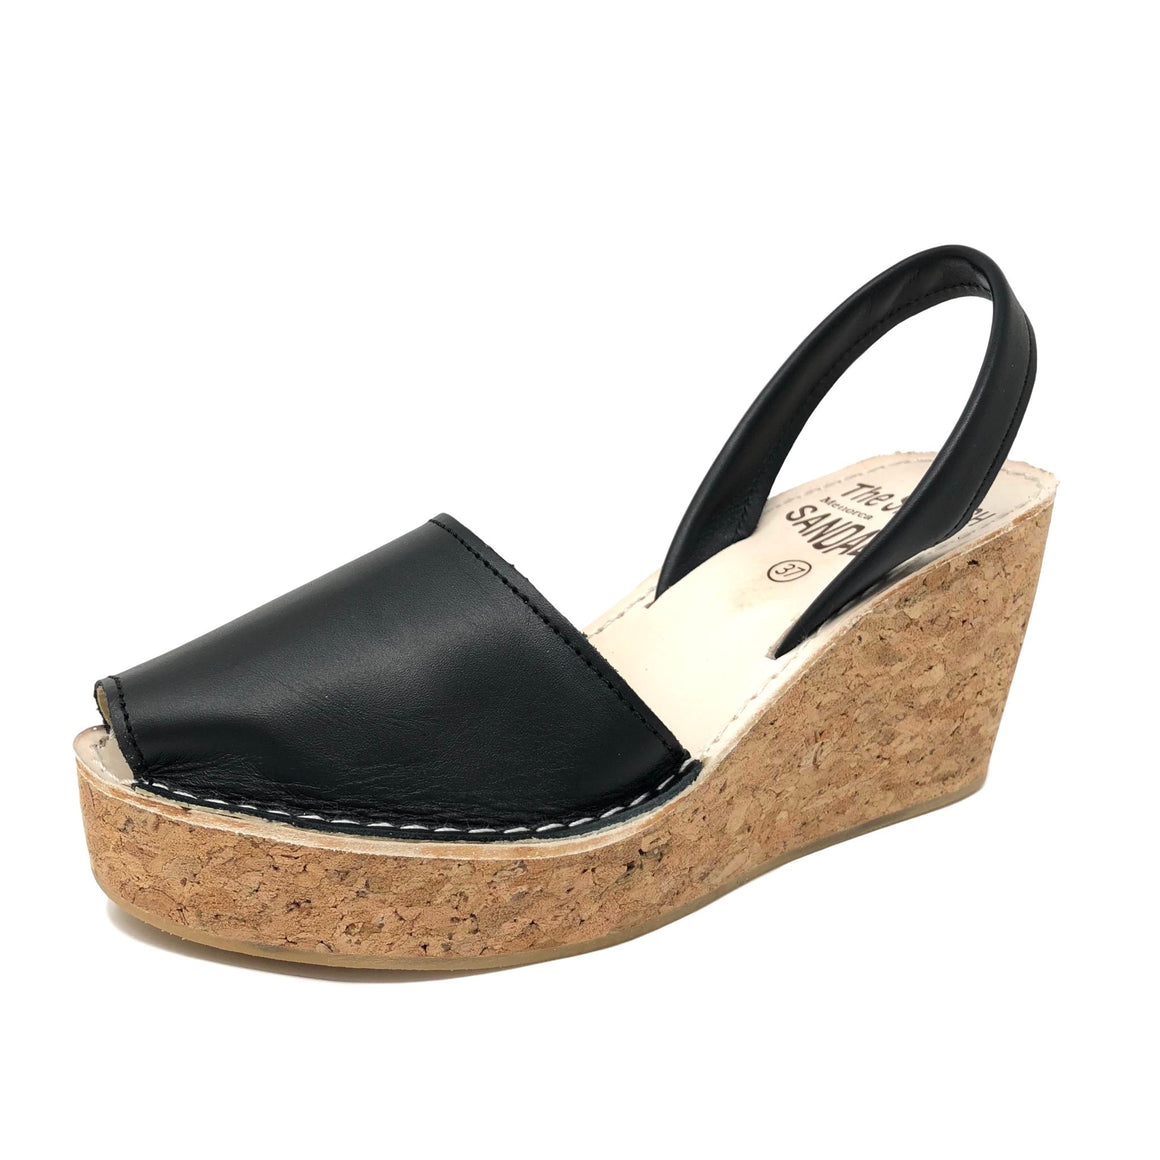 Black cork wedge spanish sandals - diagonal view